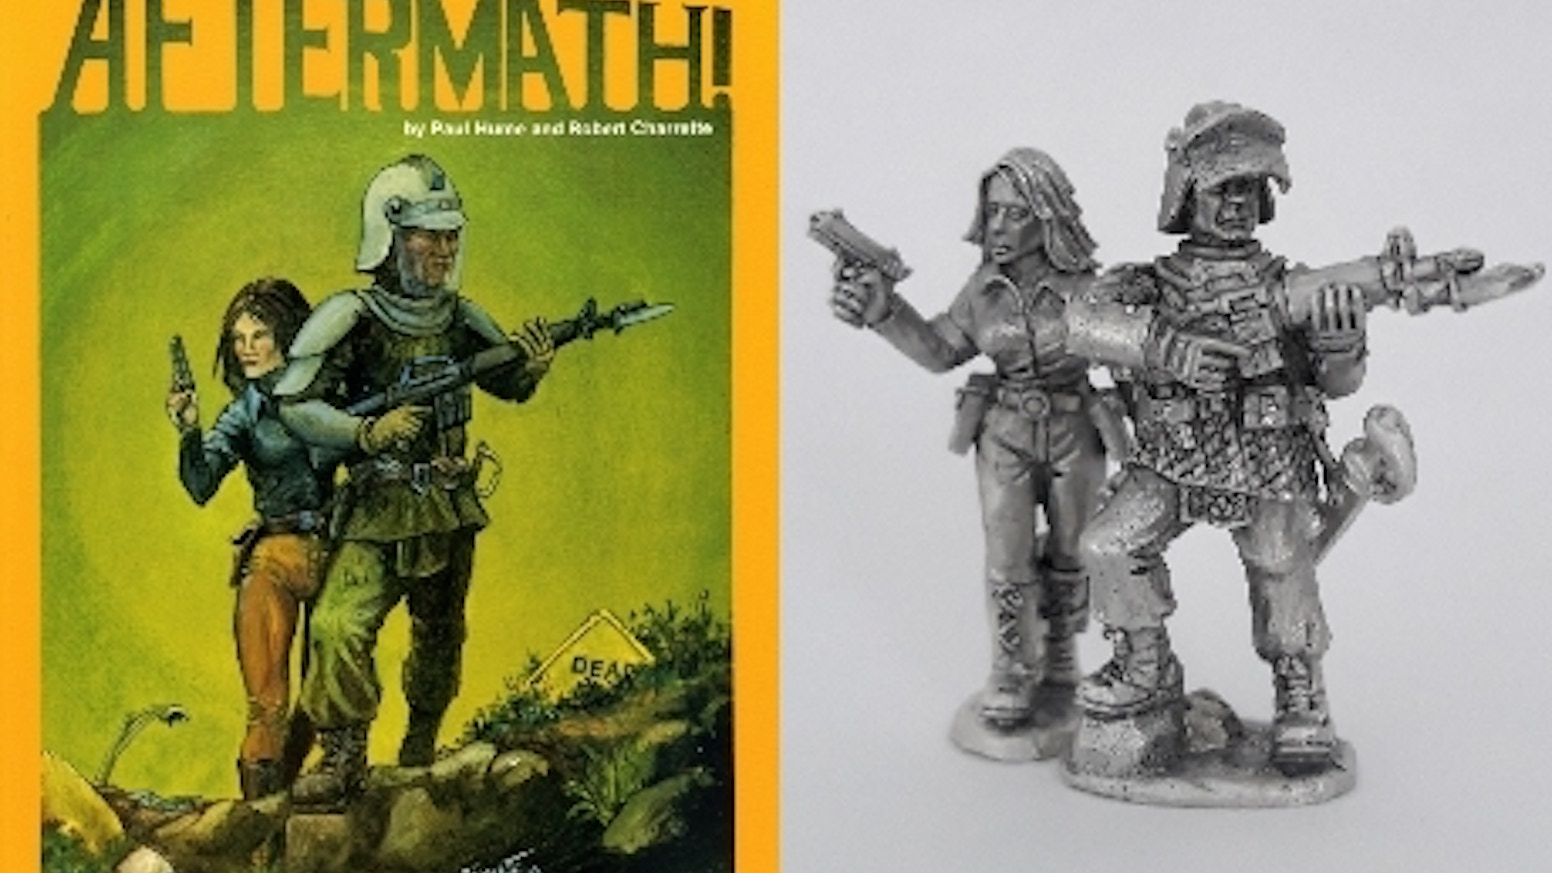 After almost 40 years the iconic cover image of the AFTERMATH! roleplaying game boxset is brought to life in 28mm gaming miniatures.